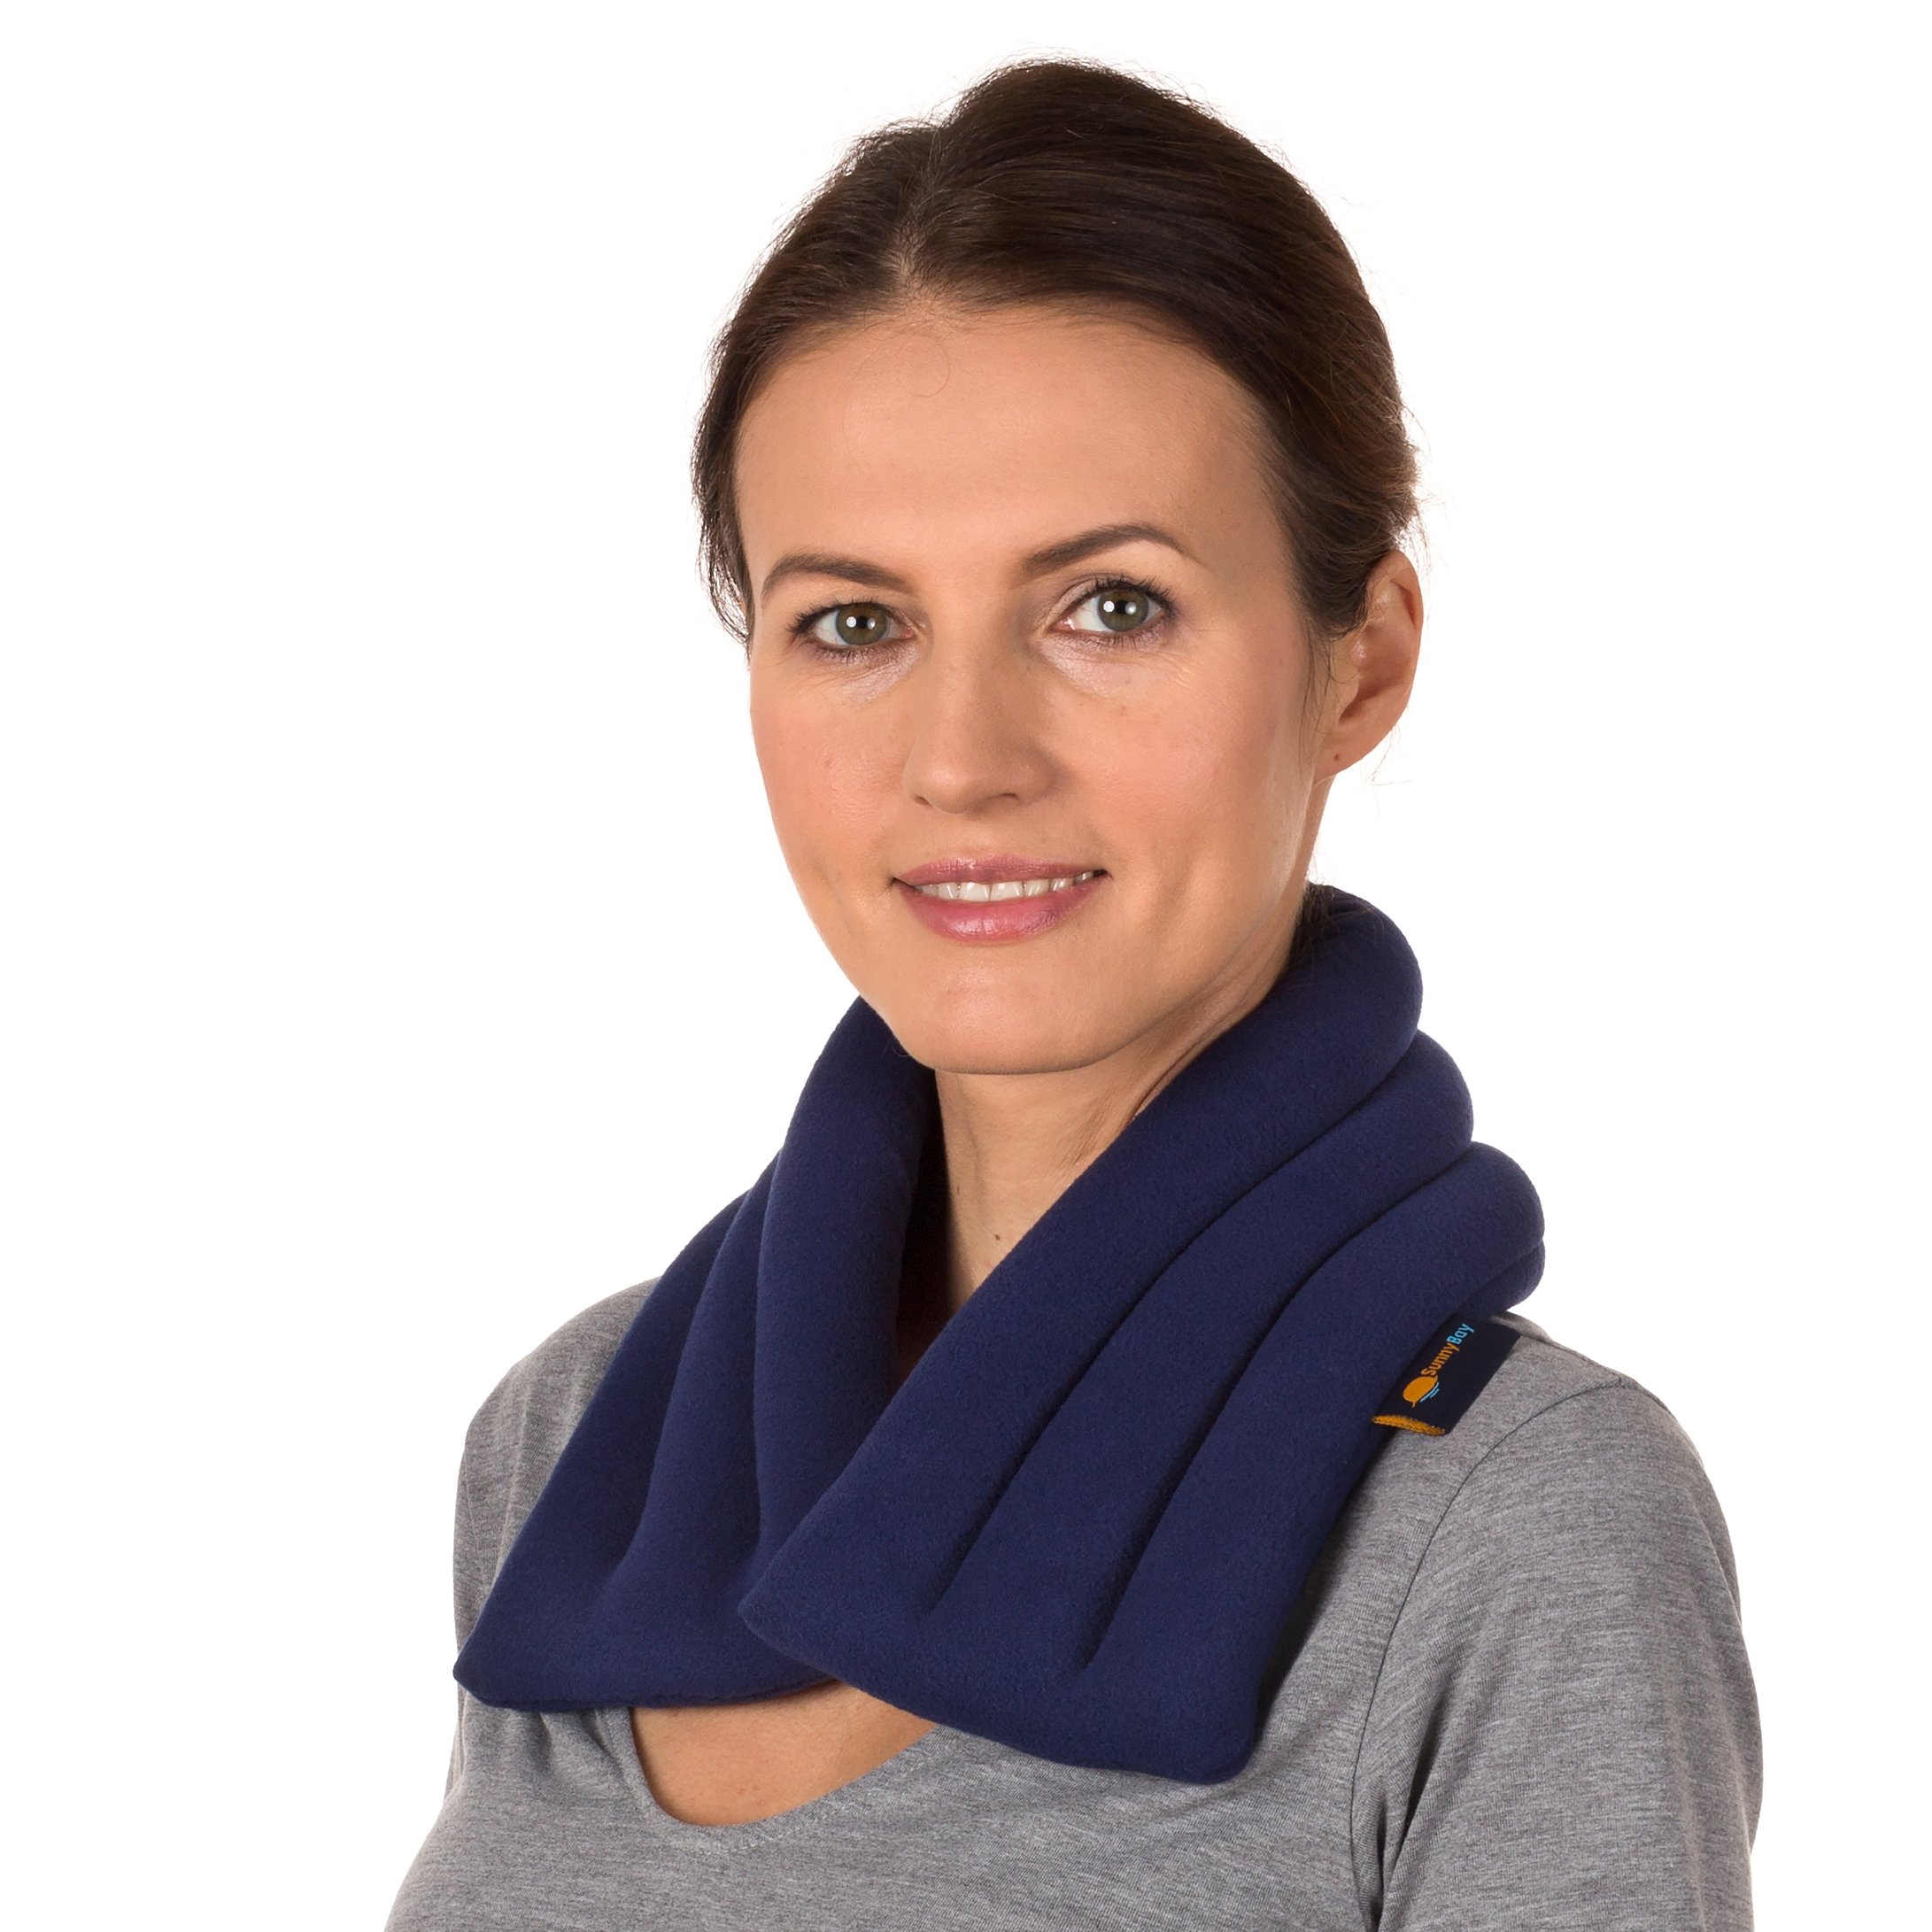 Sunny Bay Light Weight Neck Heating Wrap, Blue, Extra Long, 2 Pound